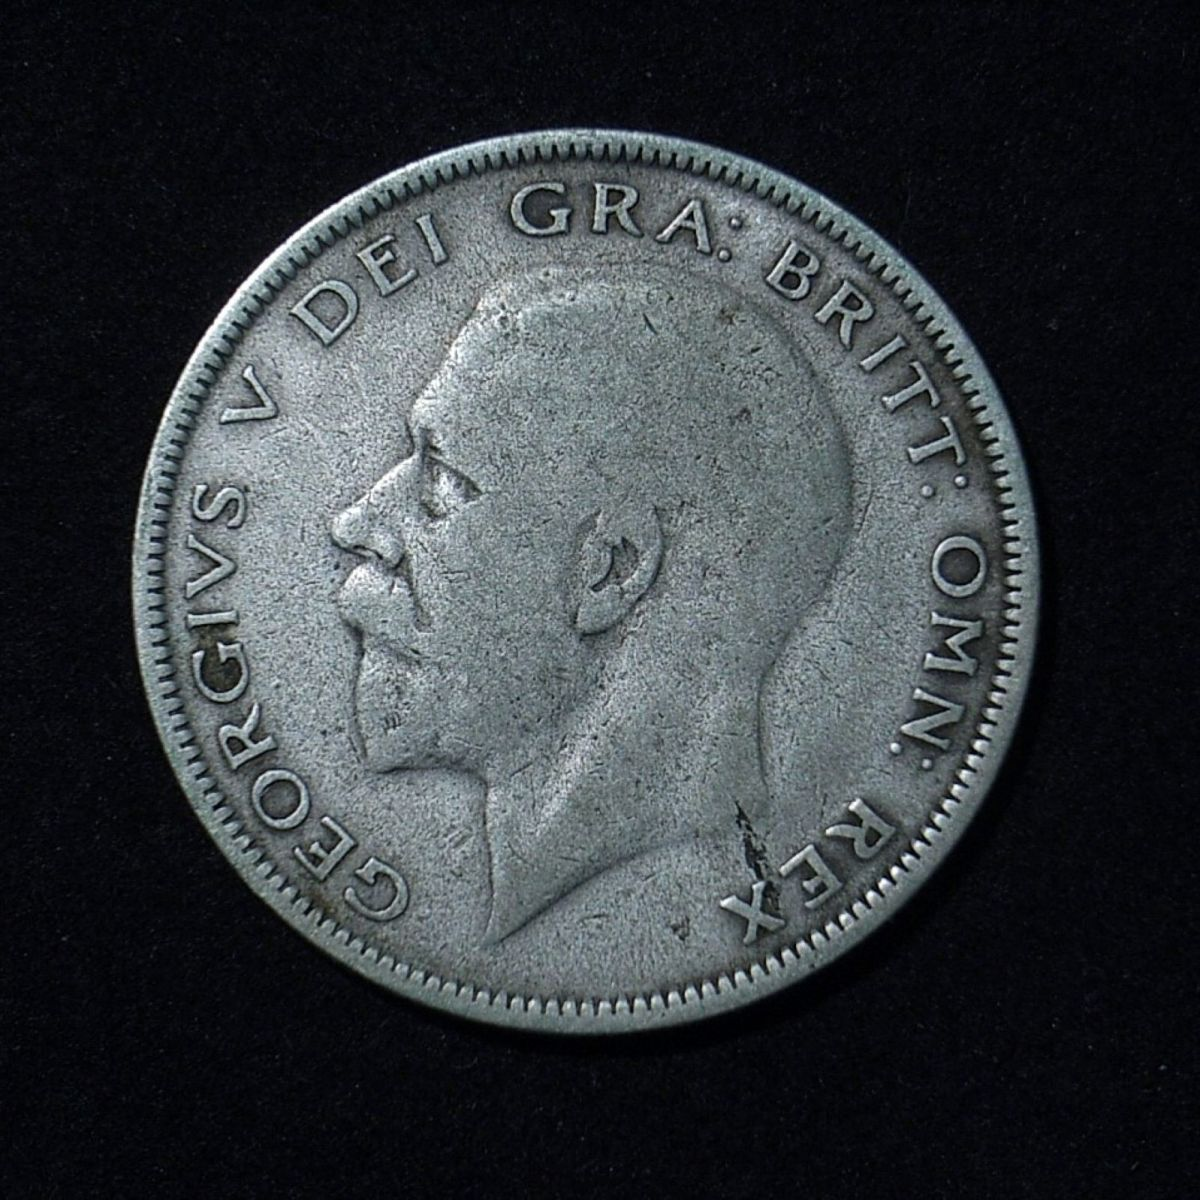 UK Half Crown 1930 obverse close up showing level of detail on the coin